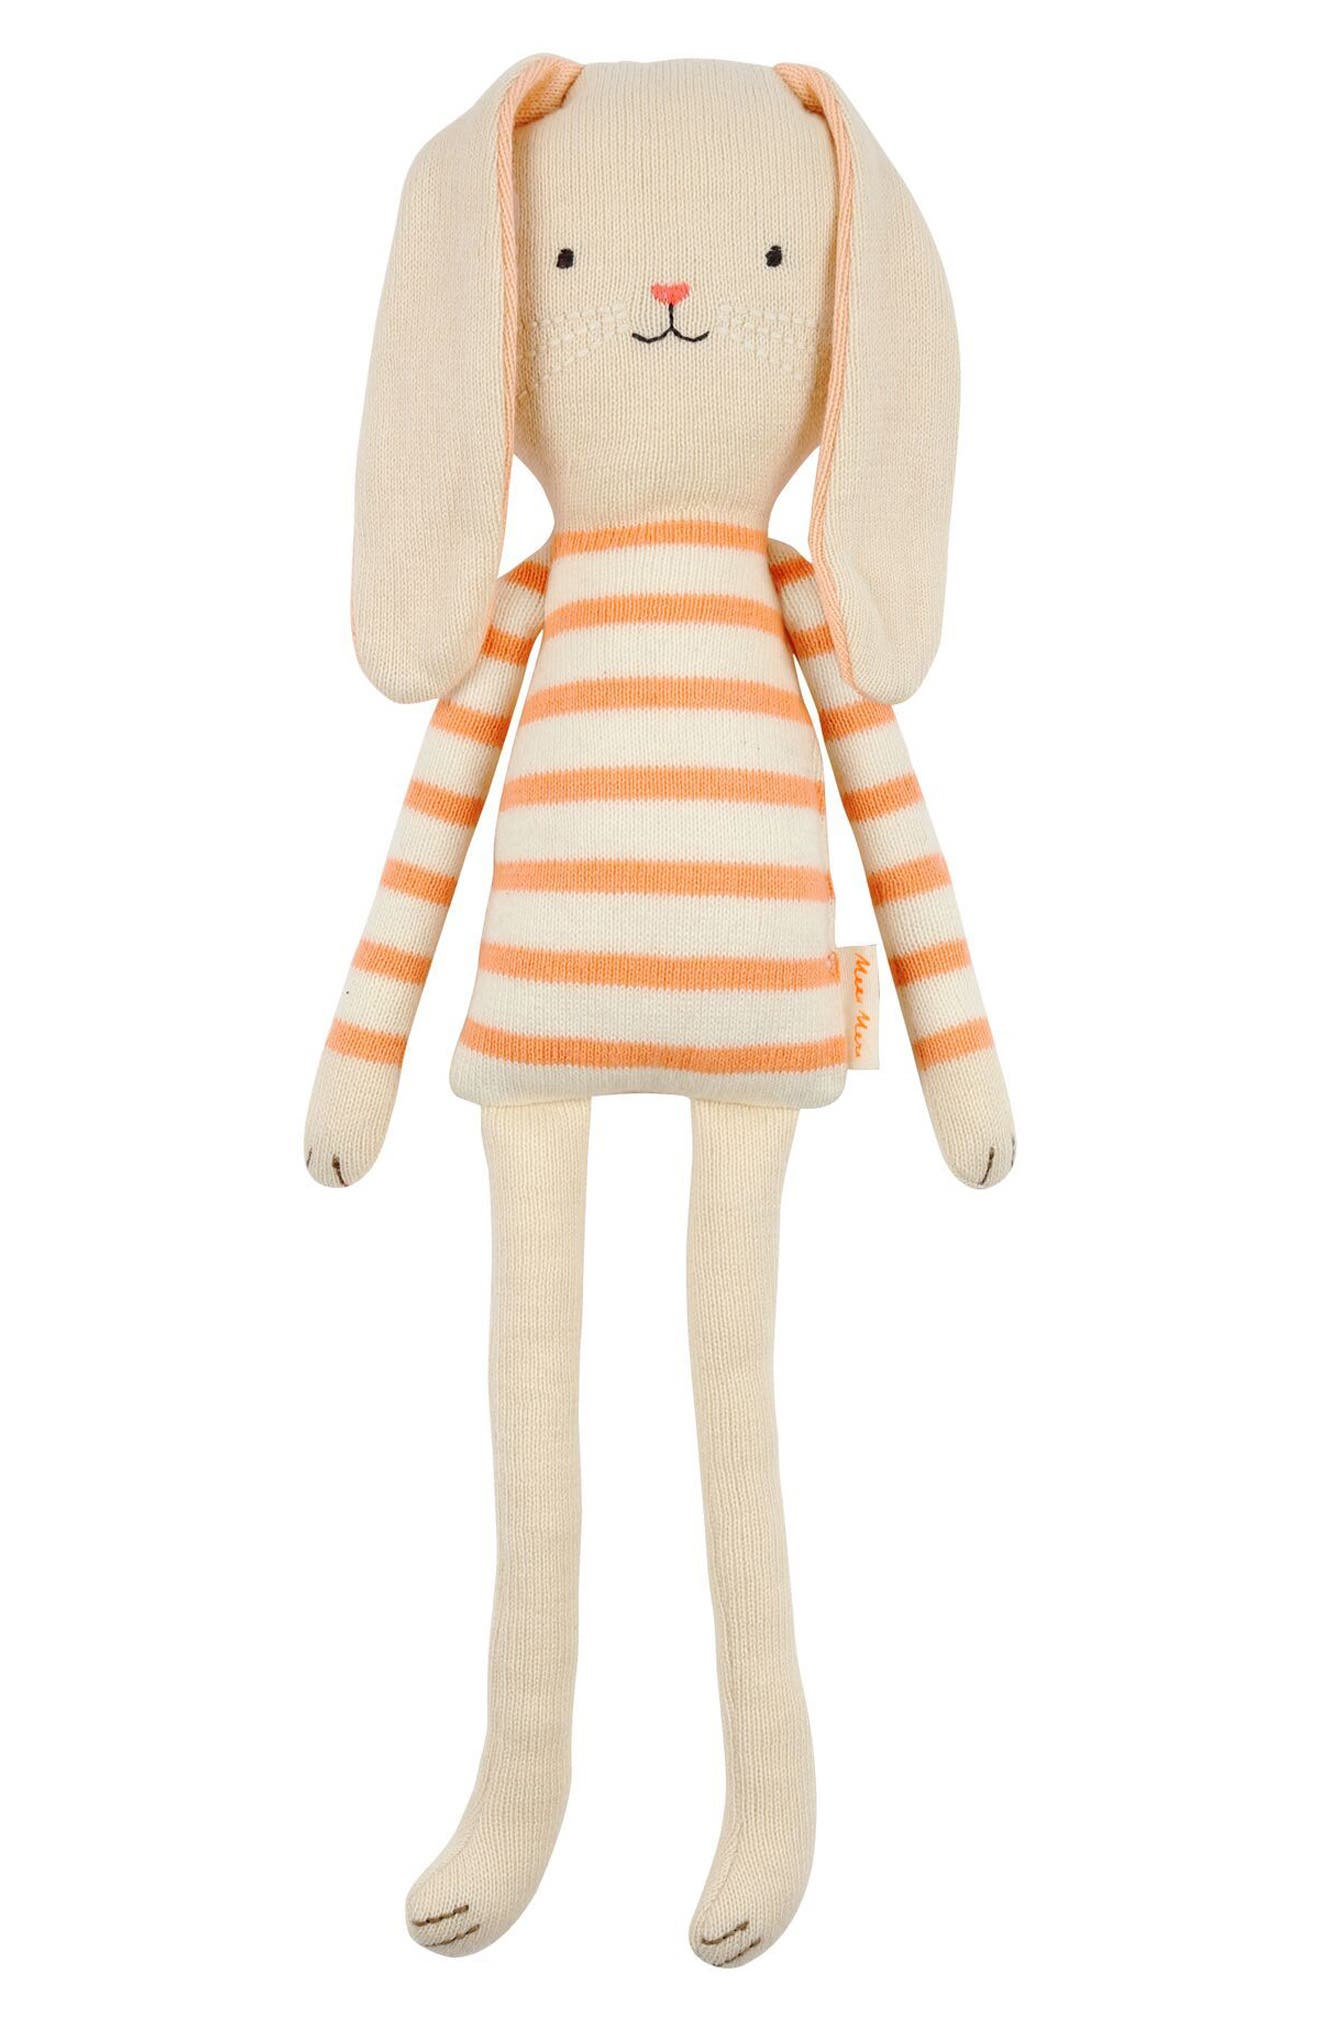 Small Stripe Sweater Organic Cotton Knit Bunny,                             Main thumbnail 1, color,                             Coral